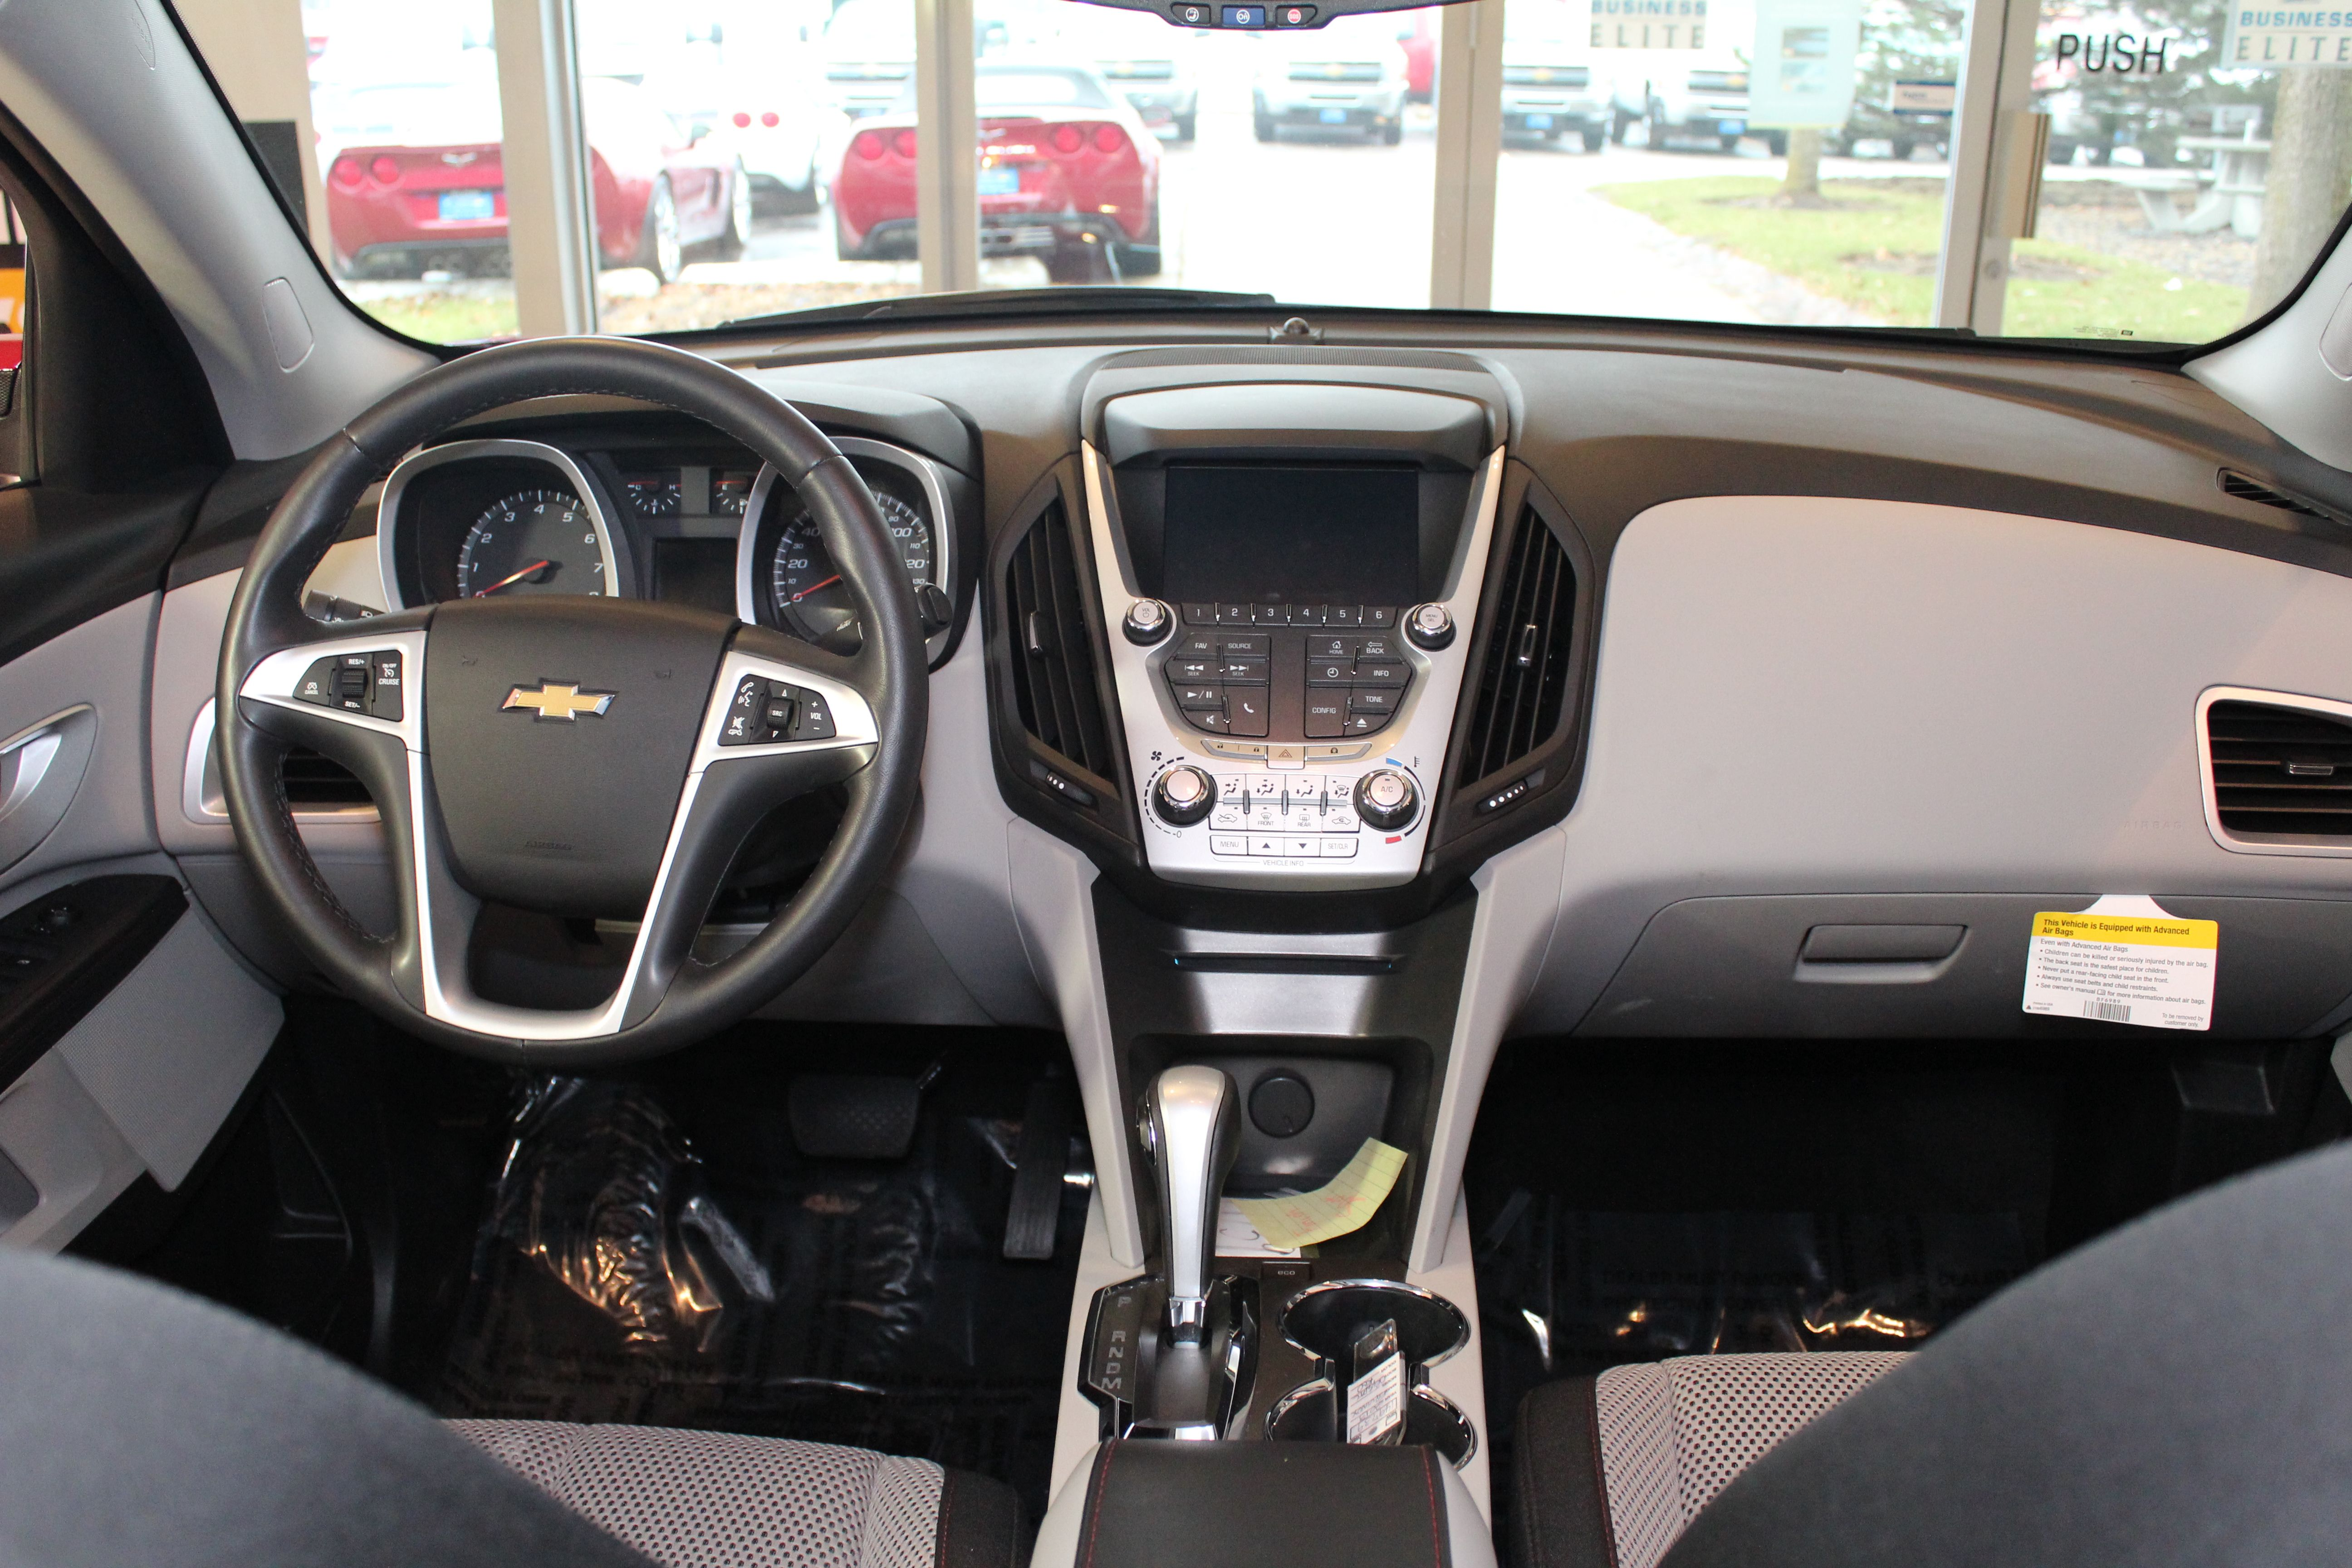 2014 Equinox Inside You Ll Find An Interior That S Designed For